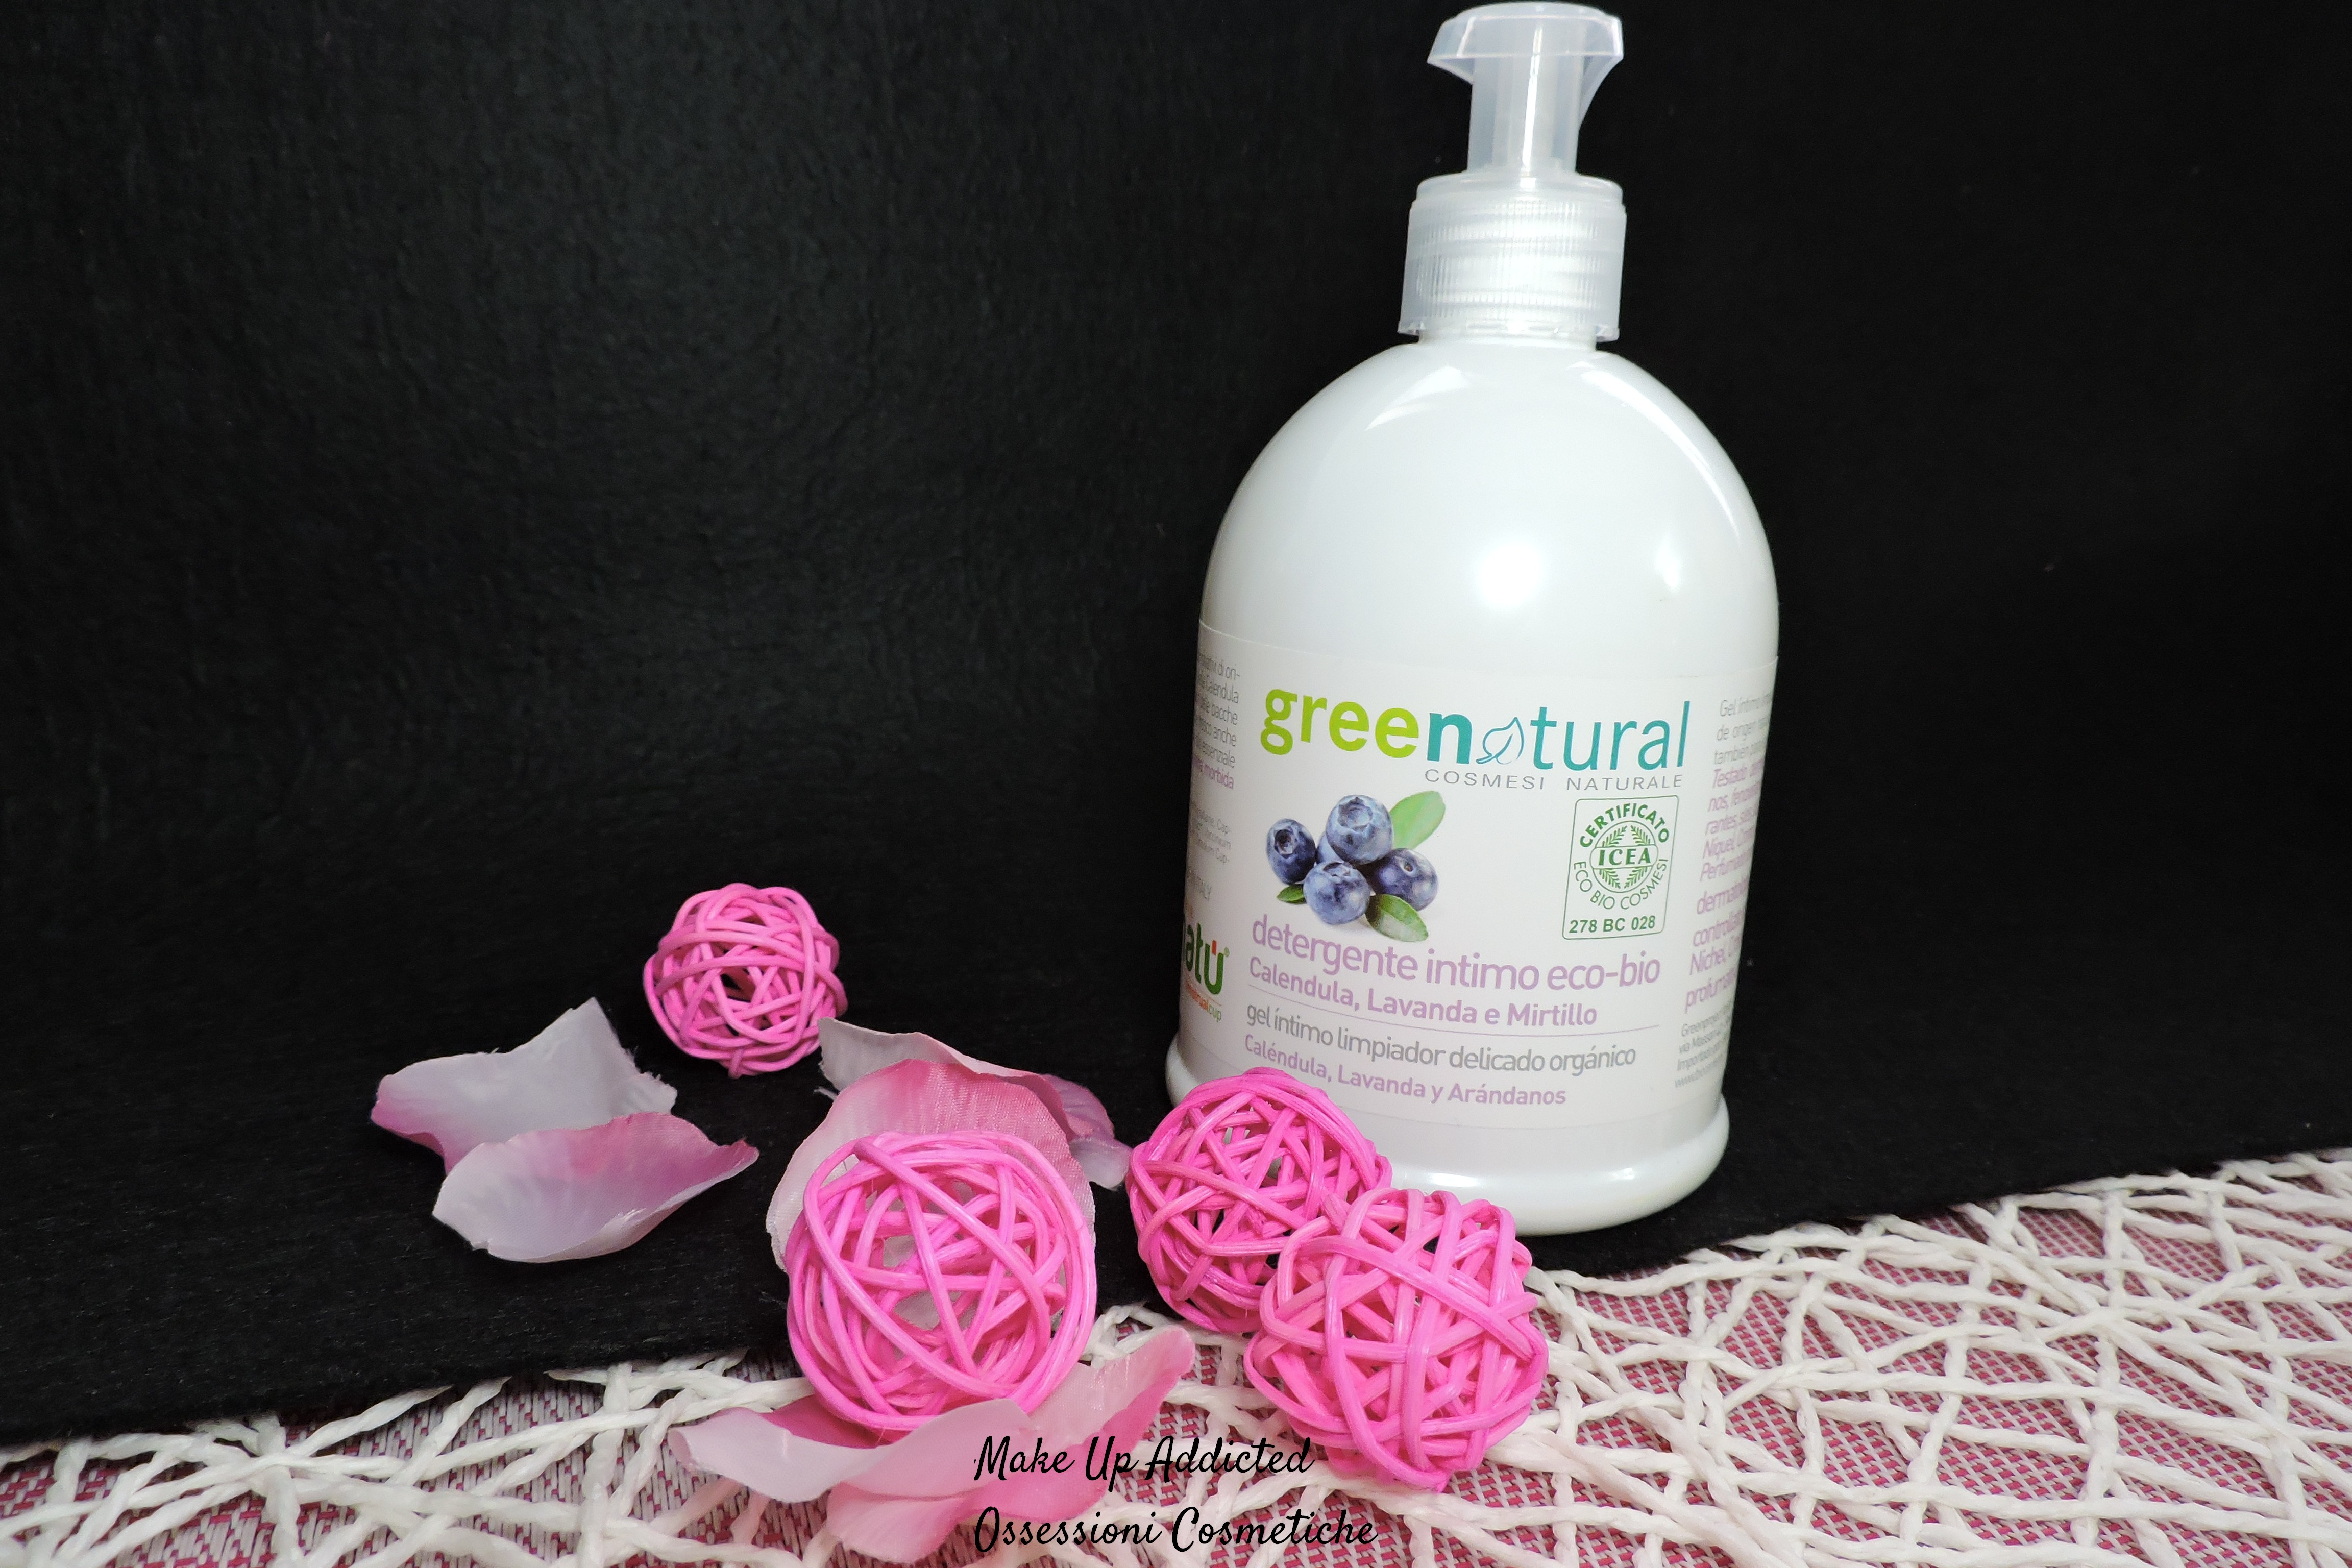 Recensione Detergente Intimo Green Natural